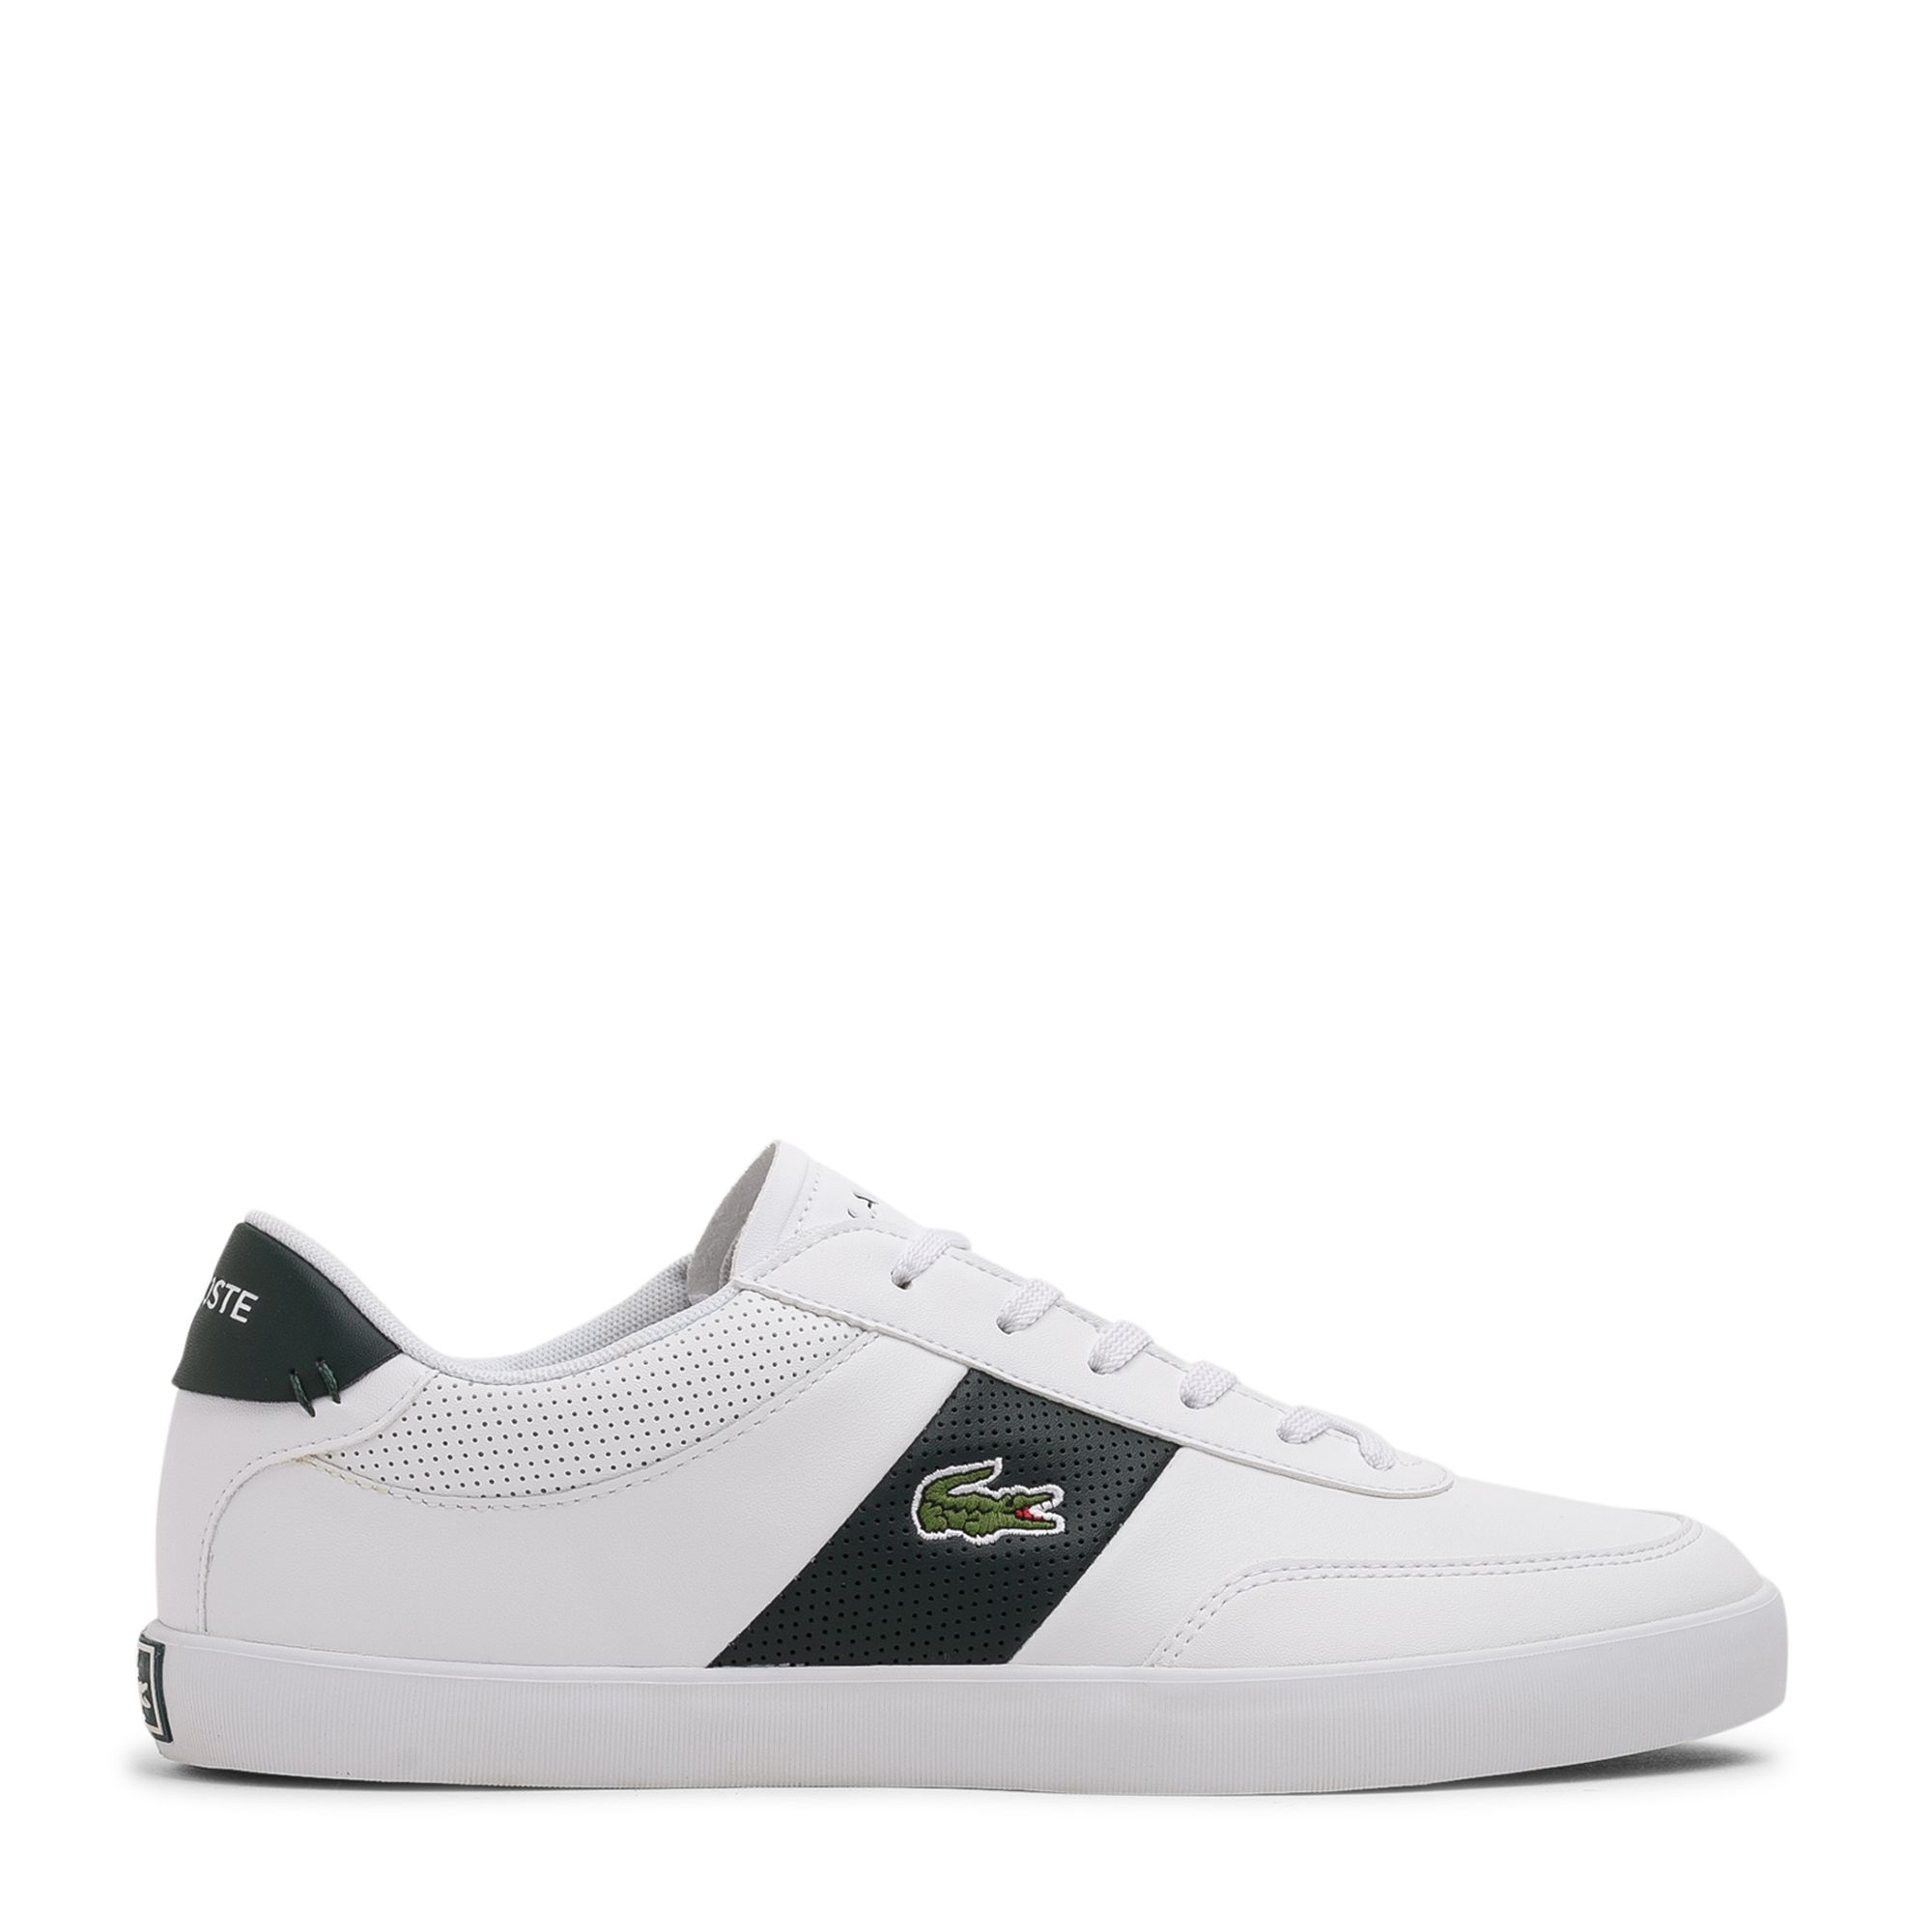 Court Master sneakers